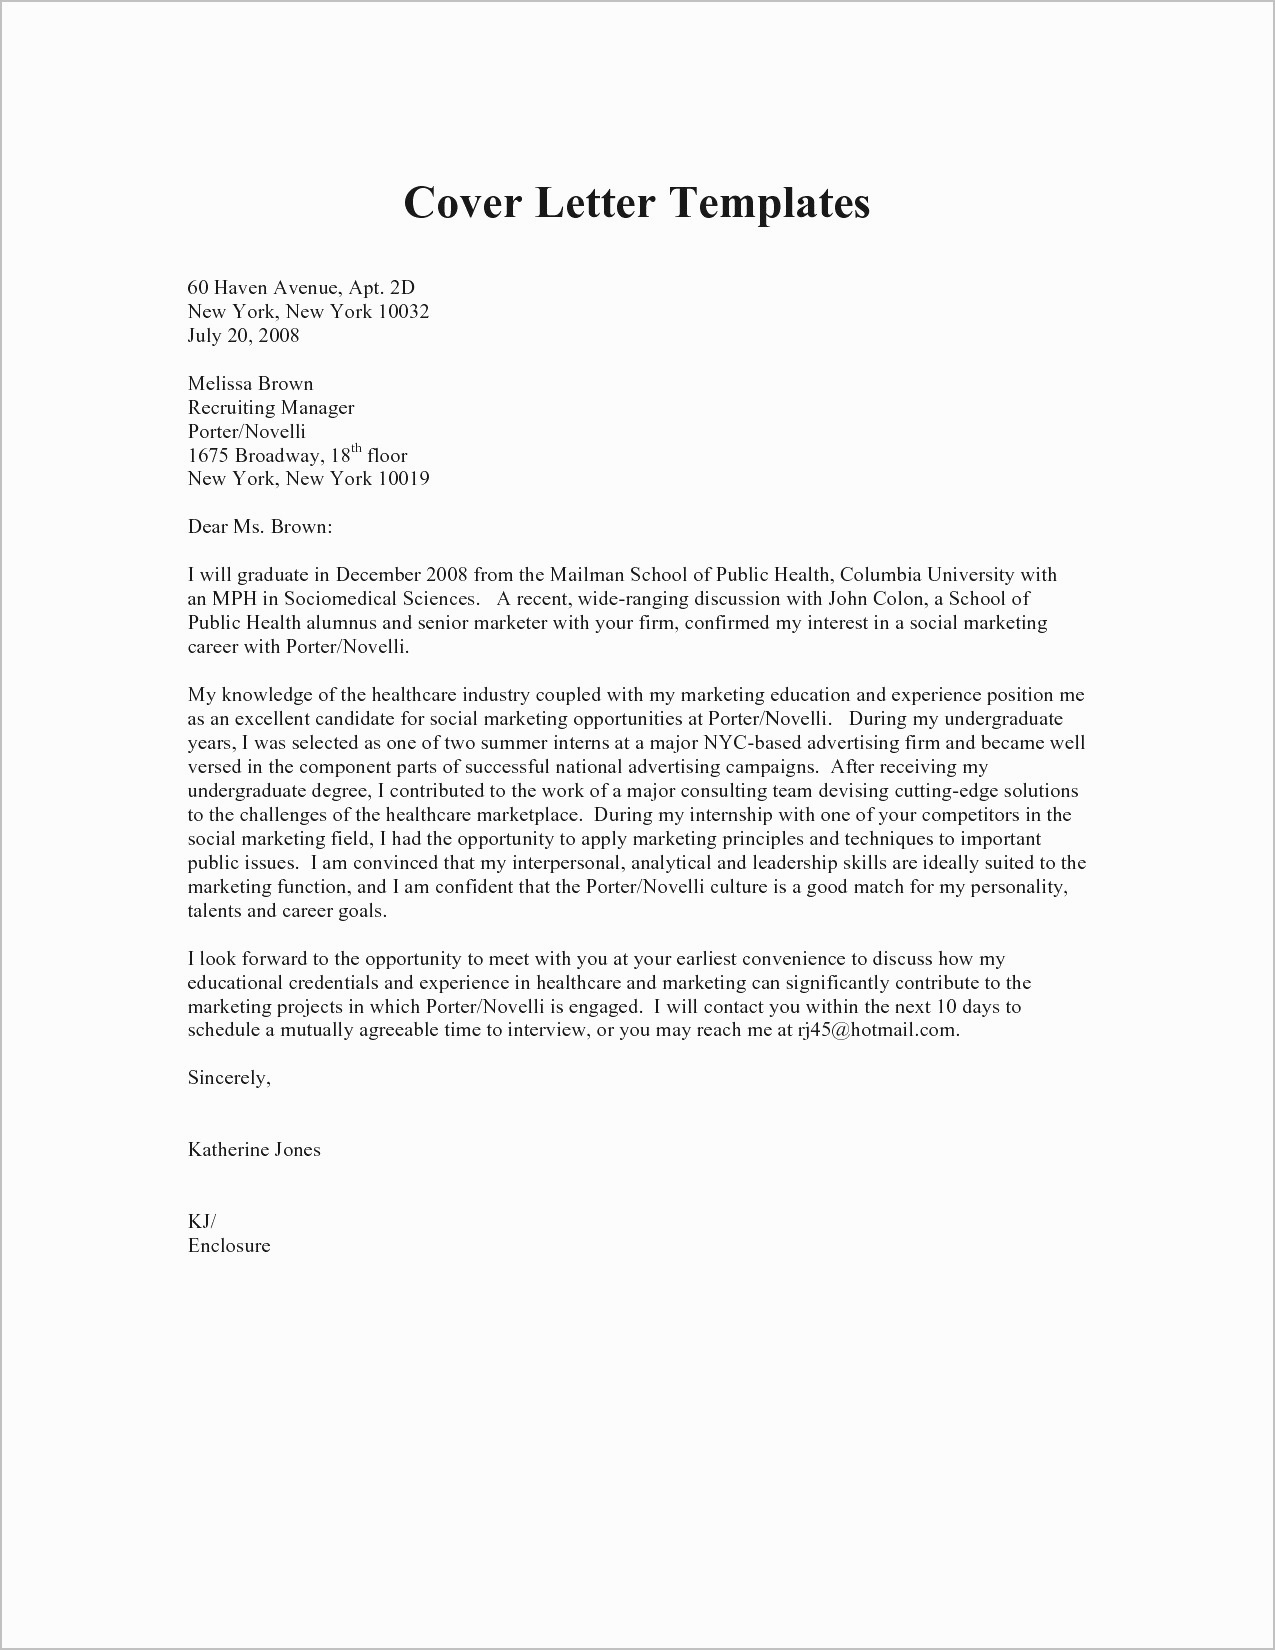 Transfer Of Ownership Letter Template - Cover Letter Introduction Sample Awesome Letter Template Change